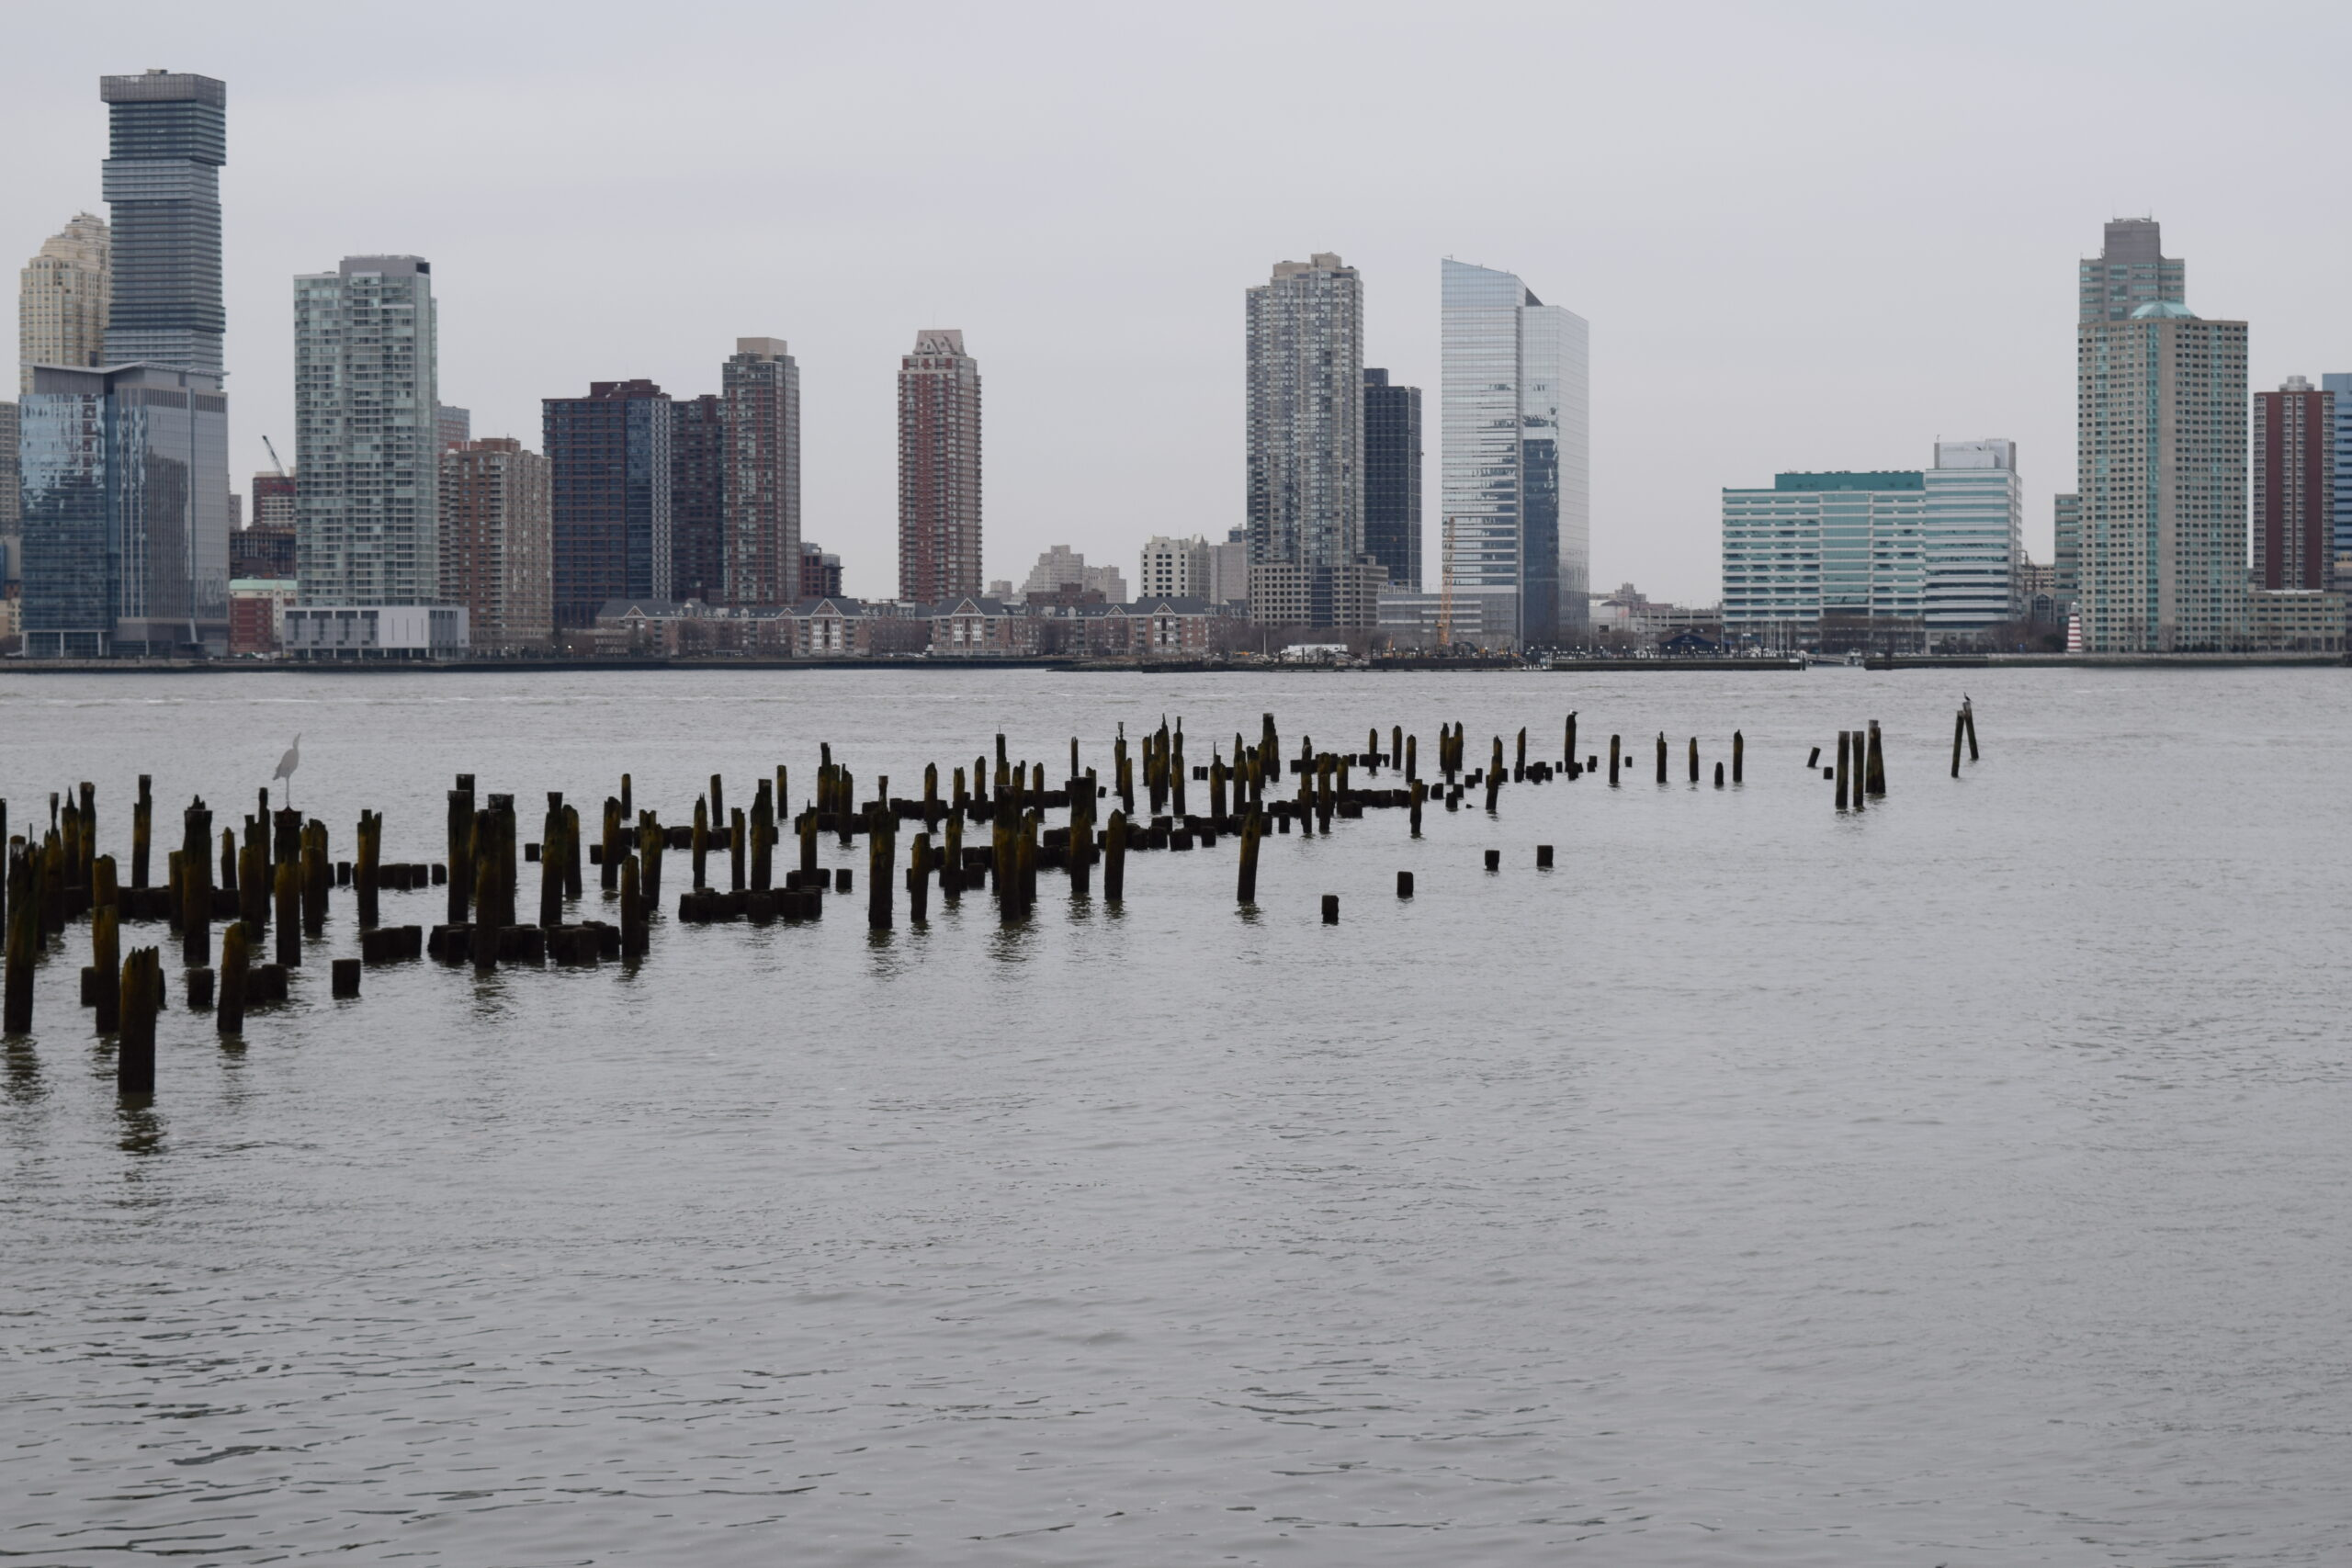 The pile field on the Hudson River is one of the places Hudson River Park grows oysters